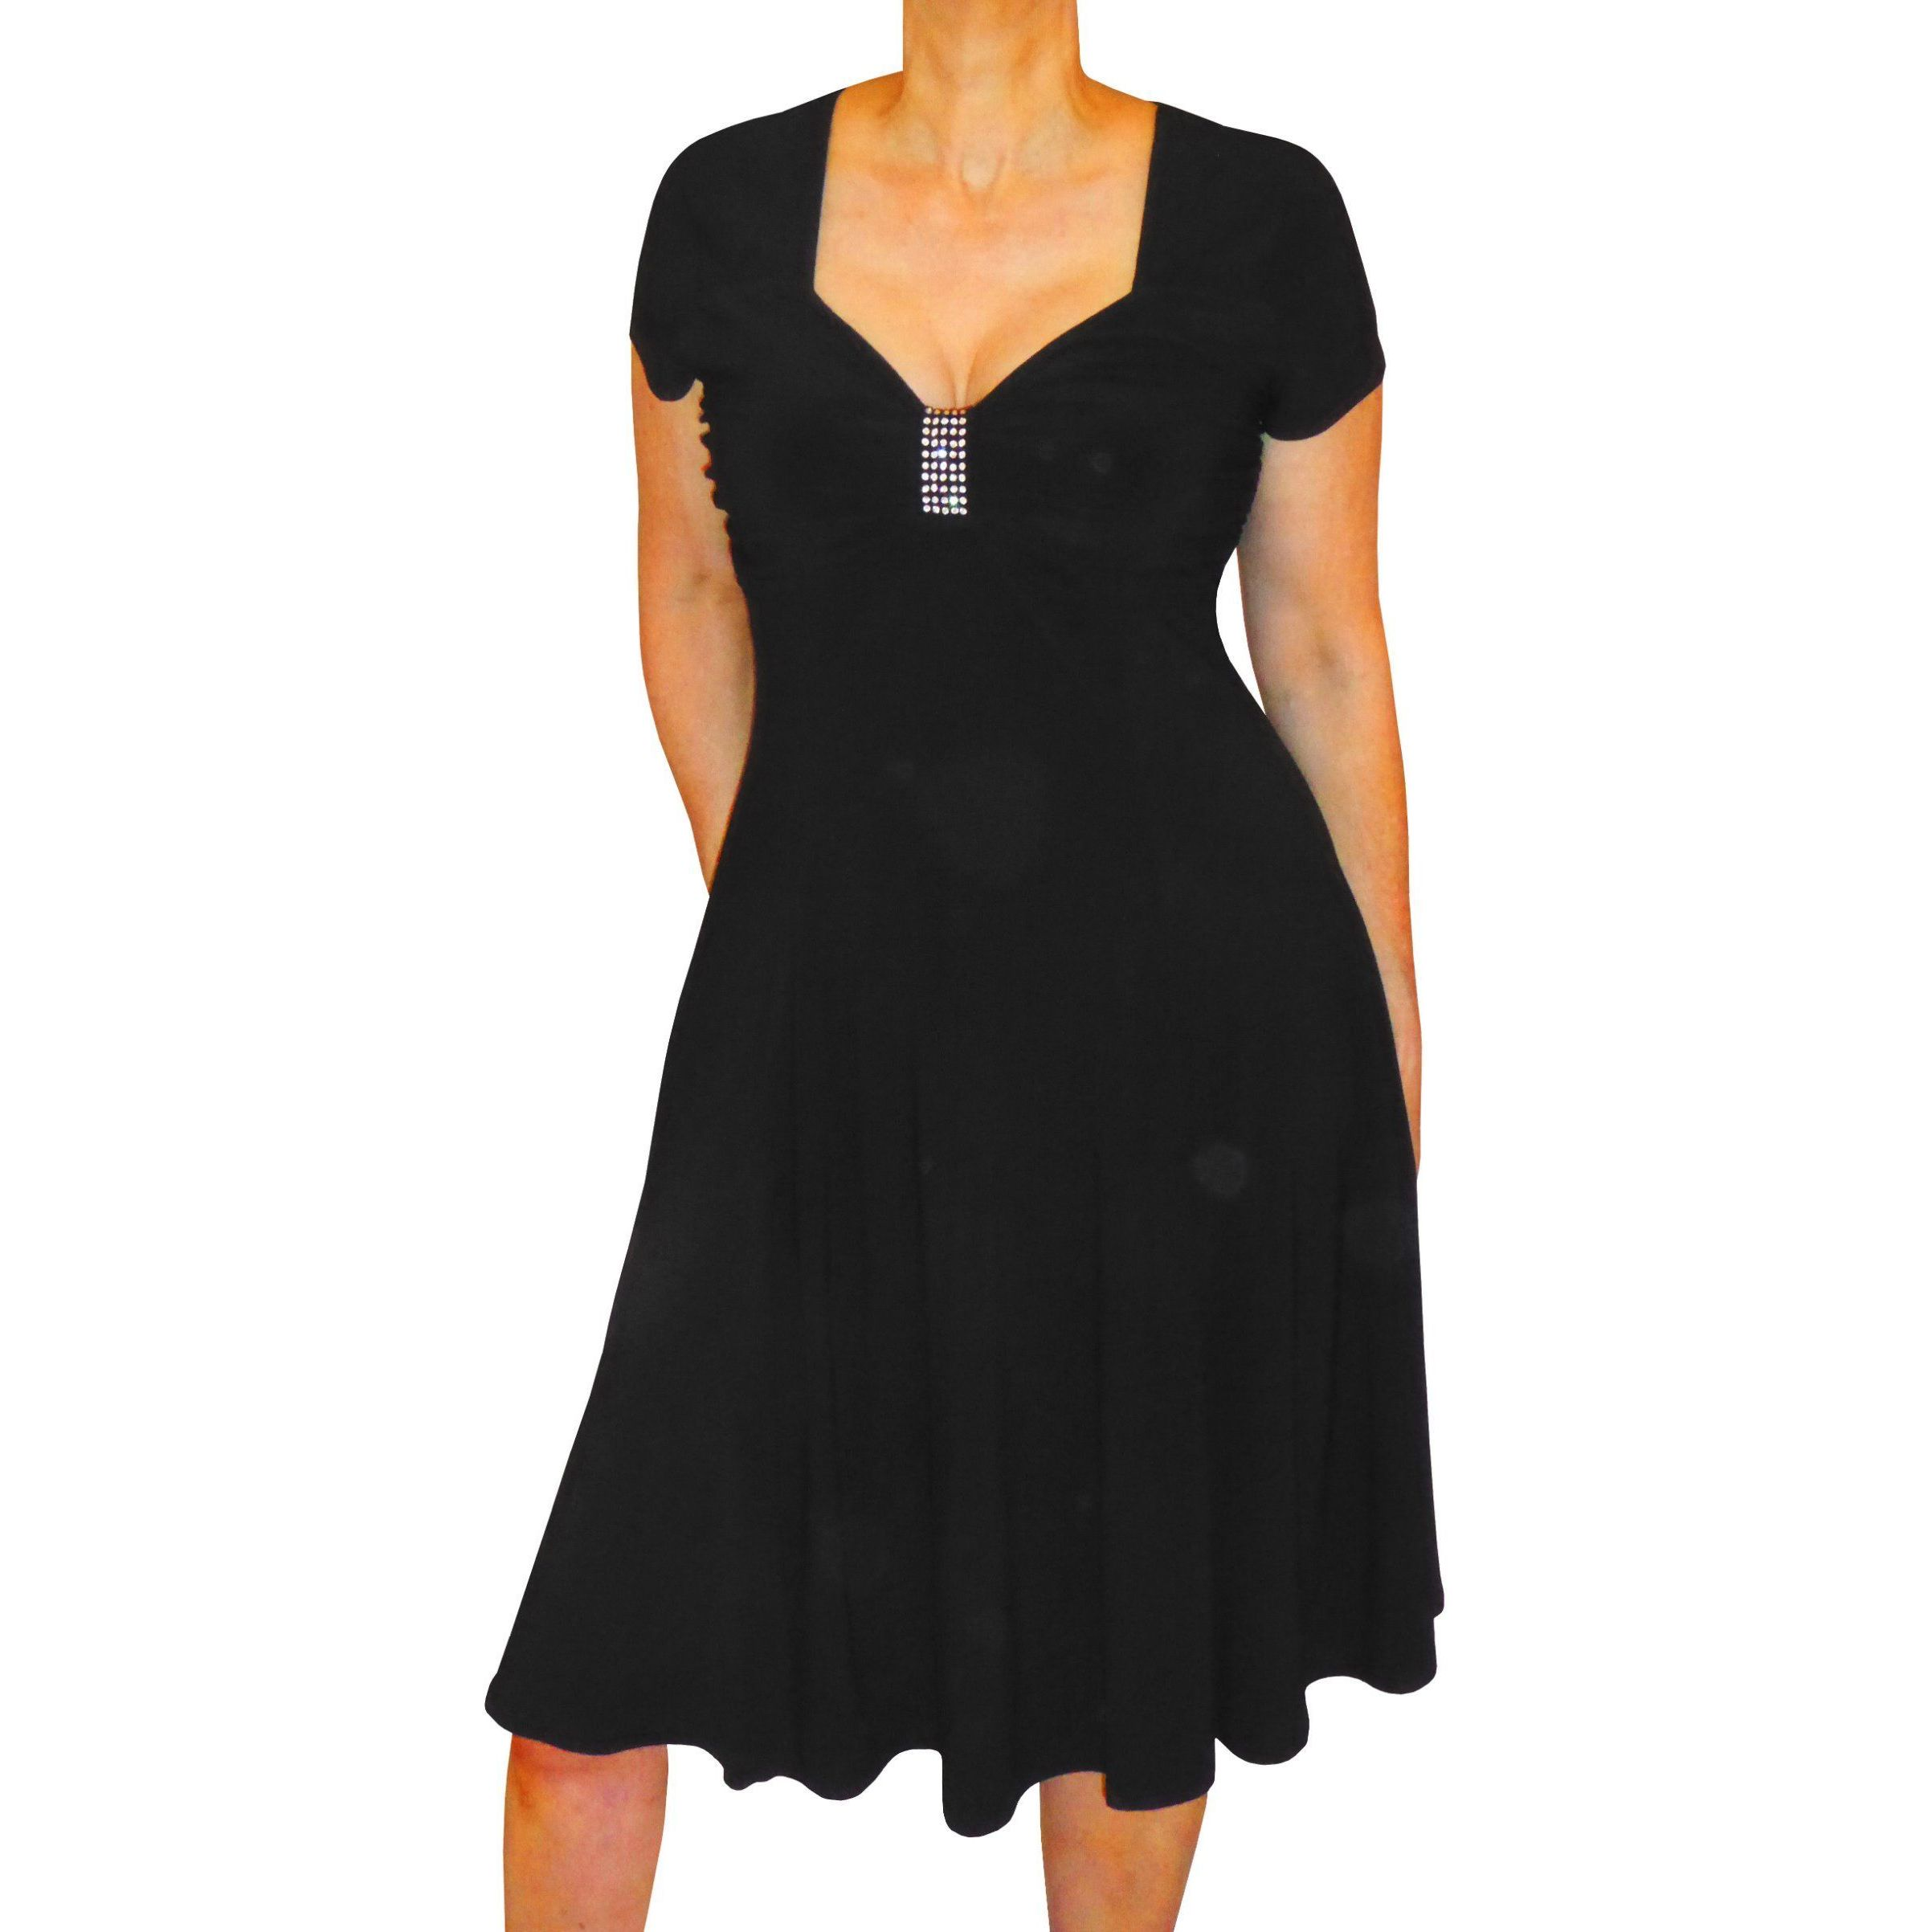 aedb00aef2 Shop Funfash Women s Black Polyester and Spandex Plus-size Slimming Empire  Waist Cocktail Dress - Free Shipping Today - Overstock - 13723874